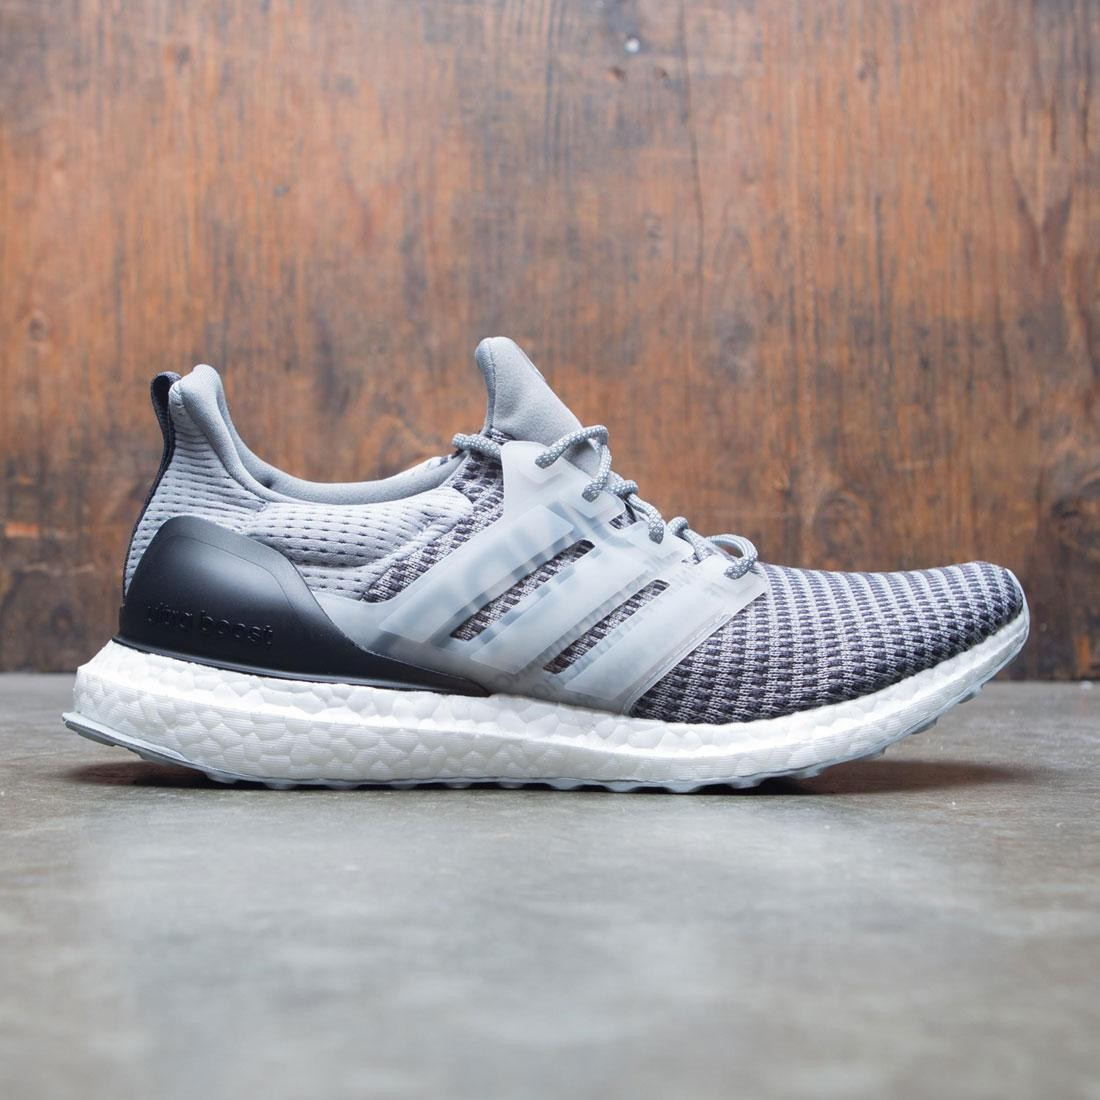 reputable site e5651 30cbb Adidas x Undefeated Men UltraBOOST (gray / shift grey / cinder / utility  black)